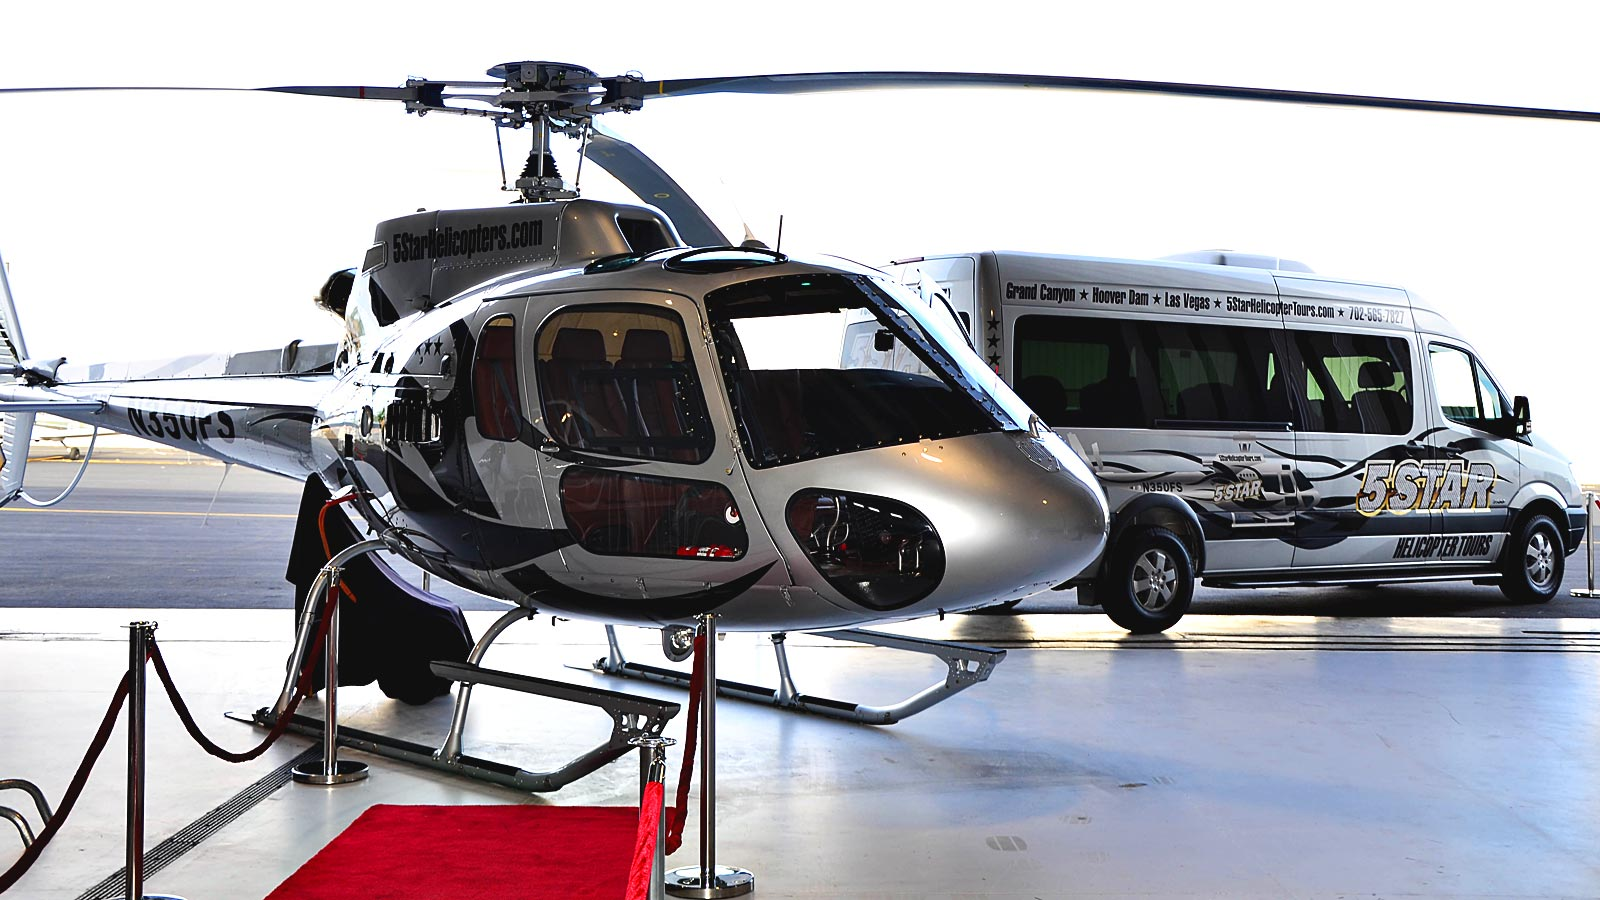 helicopter rides from vegas to grand canyon with Grand Canyon Helicopter And Atv Tour on D684 2280CH also Grand Canyon Skywalk Bridge besides Grand Canyon Helicopter And Atv Tour in addition AttractionsNear G143028 D109440 Grand Canyon South Rim Grand Canyon National Park Arizona likewise Las Vegas Helicopter Tour.